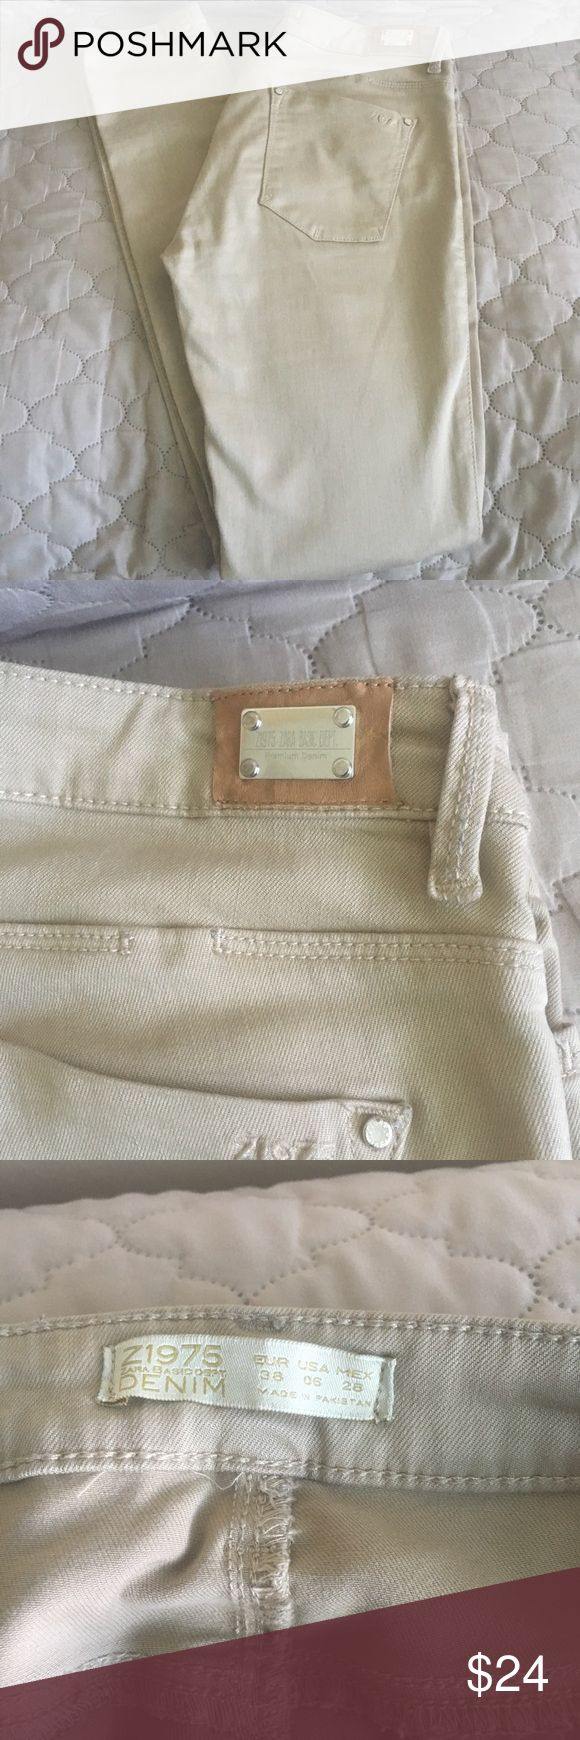 """Zara 1975 Tan Skinny Jeans Size 6. Tan khaki color.  Skinny fit w 5"""" cuffs.  Inseam 31"""", Outseam 41"""".  Minor flaws as shown- thread discoloration on belt loop and loose threads on pocket.  Otherwise, good condition. Zara Jeans Skinny"""